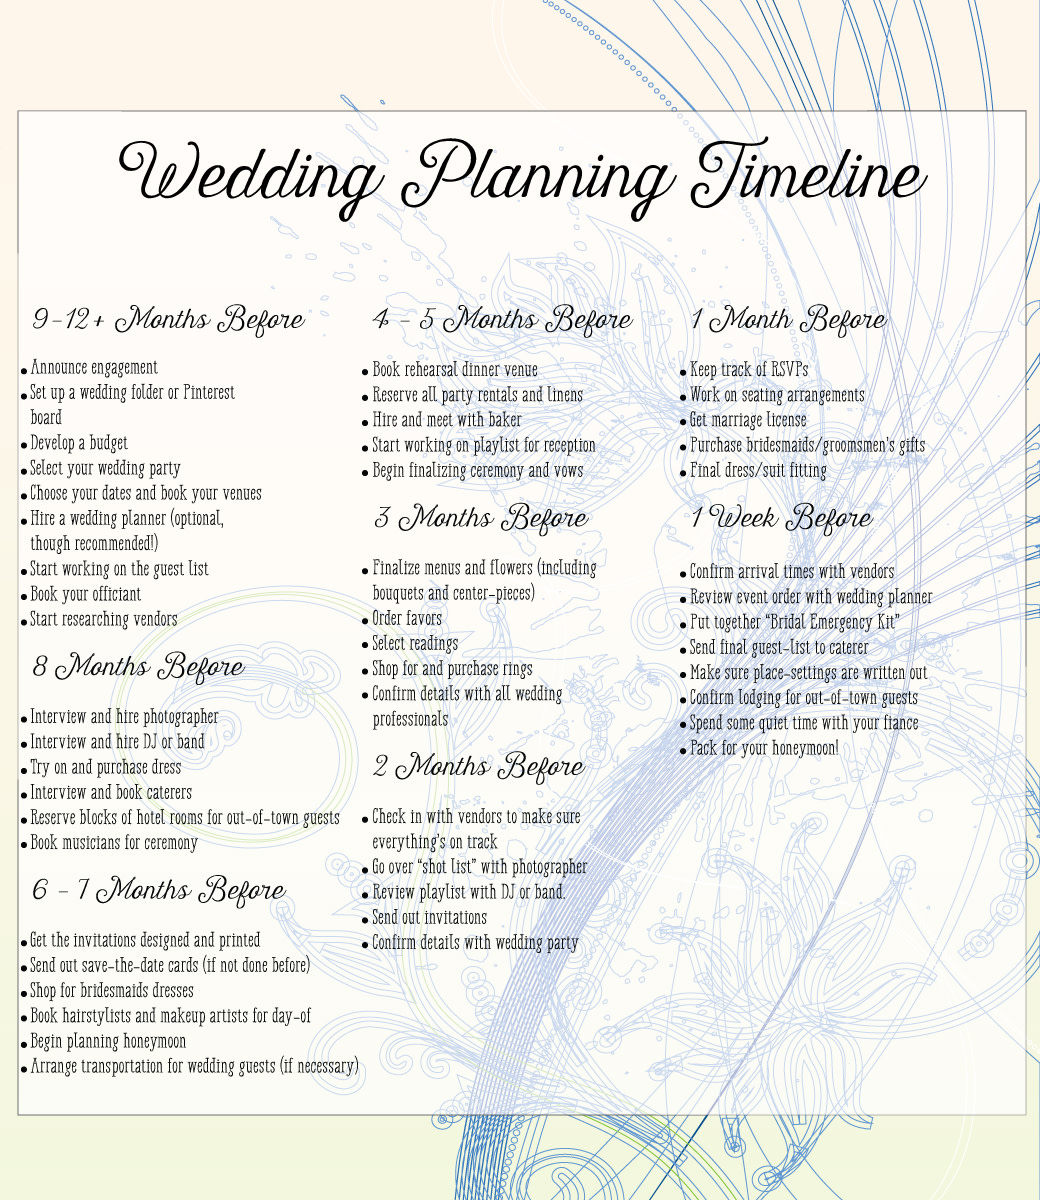 things needed for planning